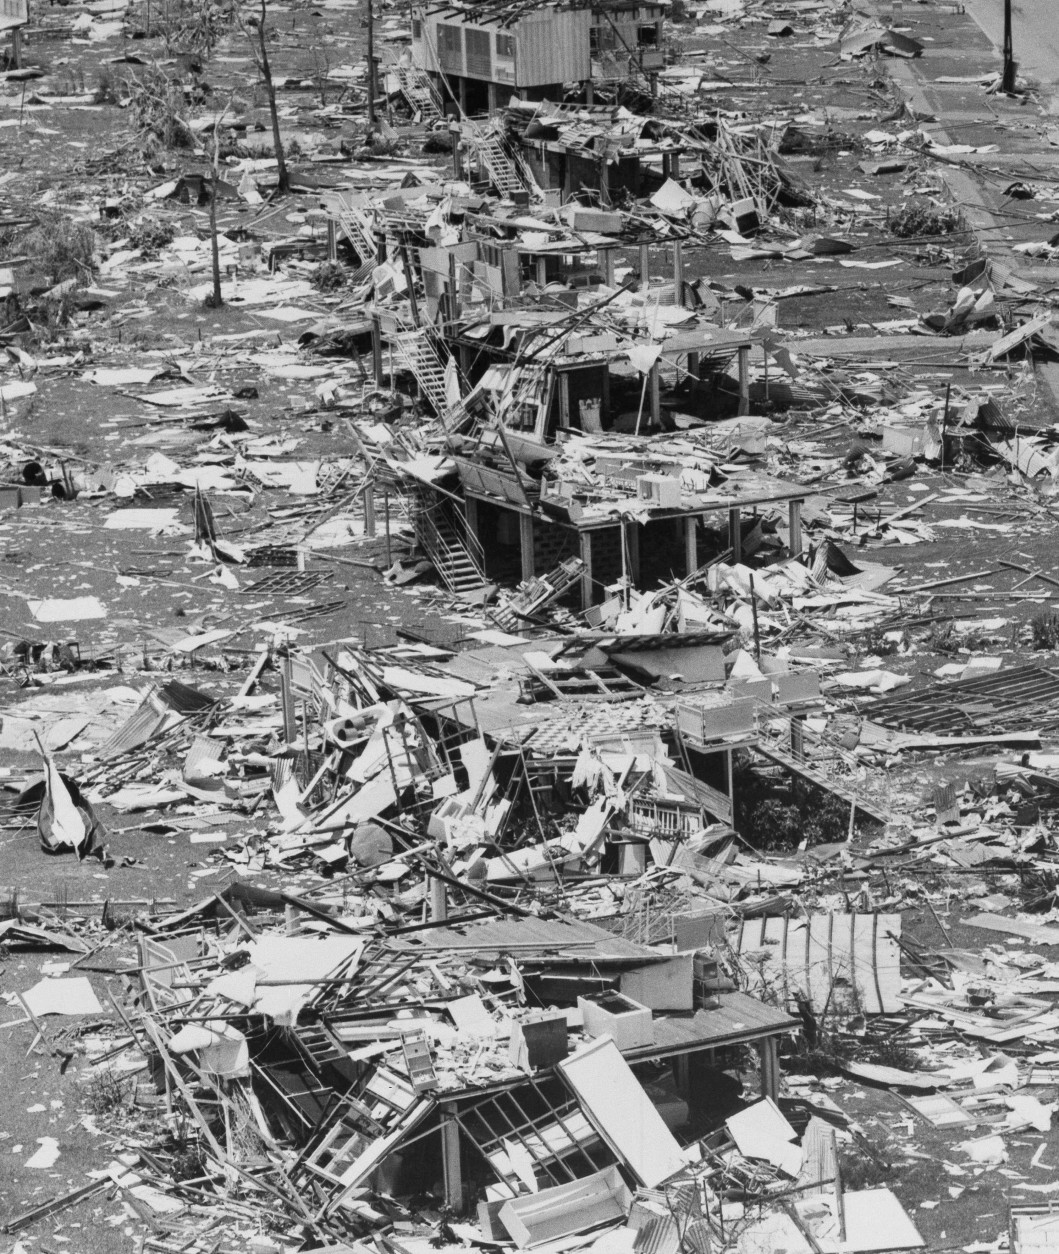 A photograph June 26,1975 of Darwin after Cyclone Tracy hit last Christmas Day Dec. 25, 1974, shows a row of stilt houses smashed and surrounded by rubble. Darwin is Australia's northernmost city, with a population at the time of the cyclone of 46,000. Nearly two thirds of the houses in town were wrecked in the storm, which also killed 49 people. (AP Photo/Jim Bourdier)